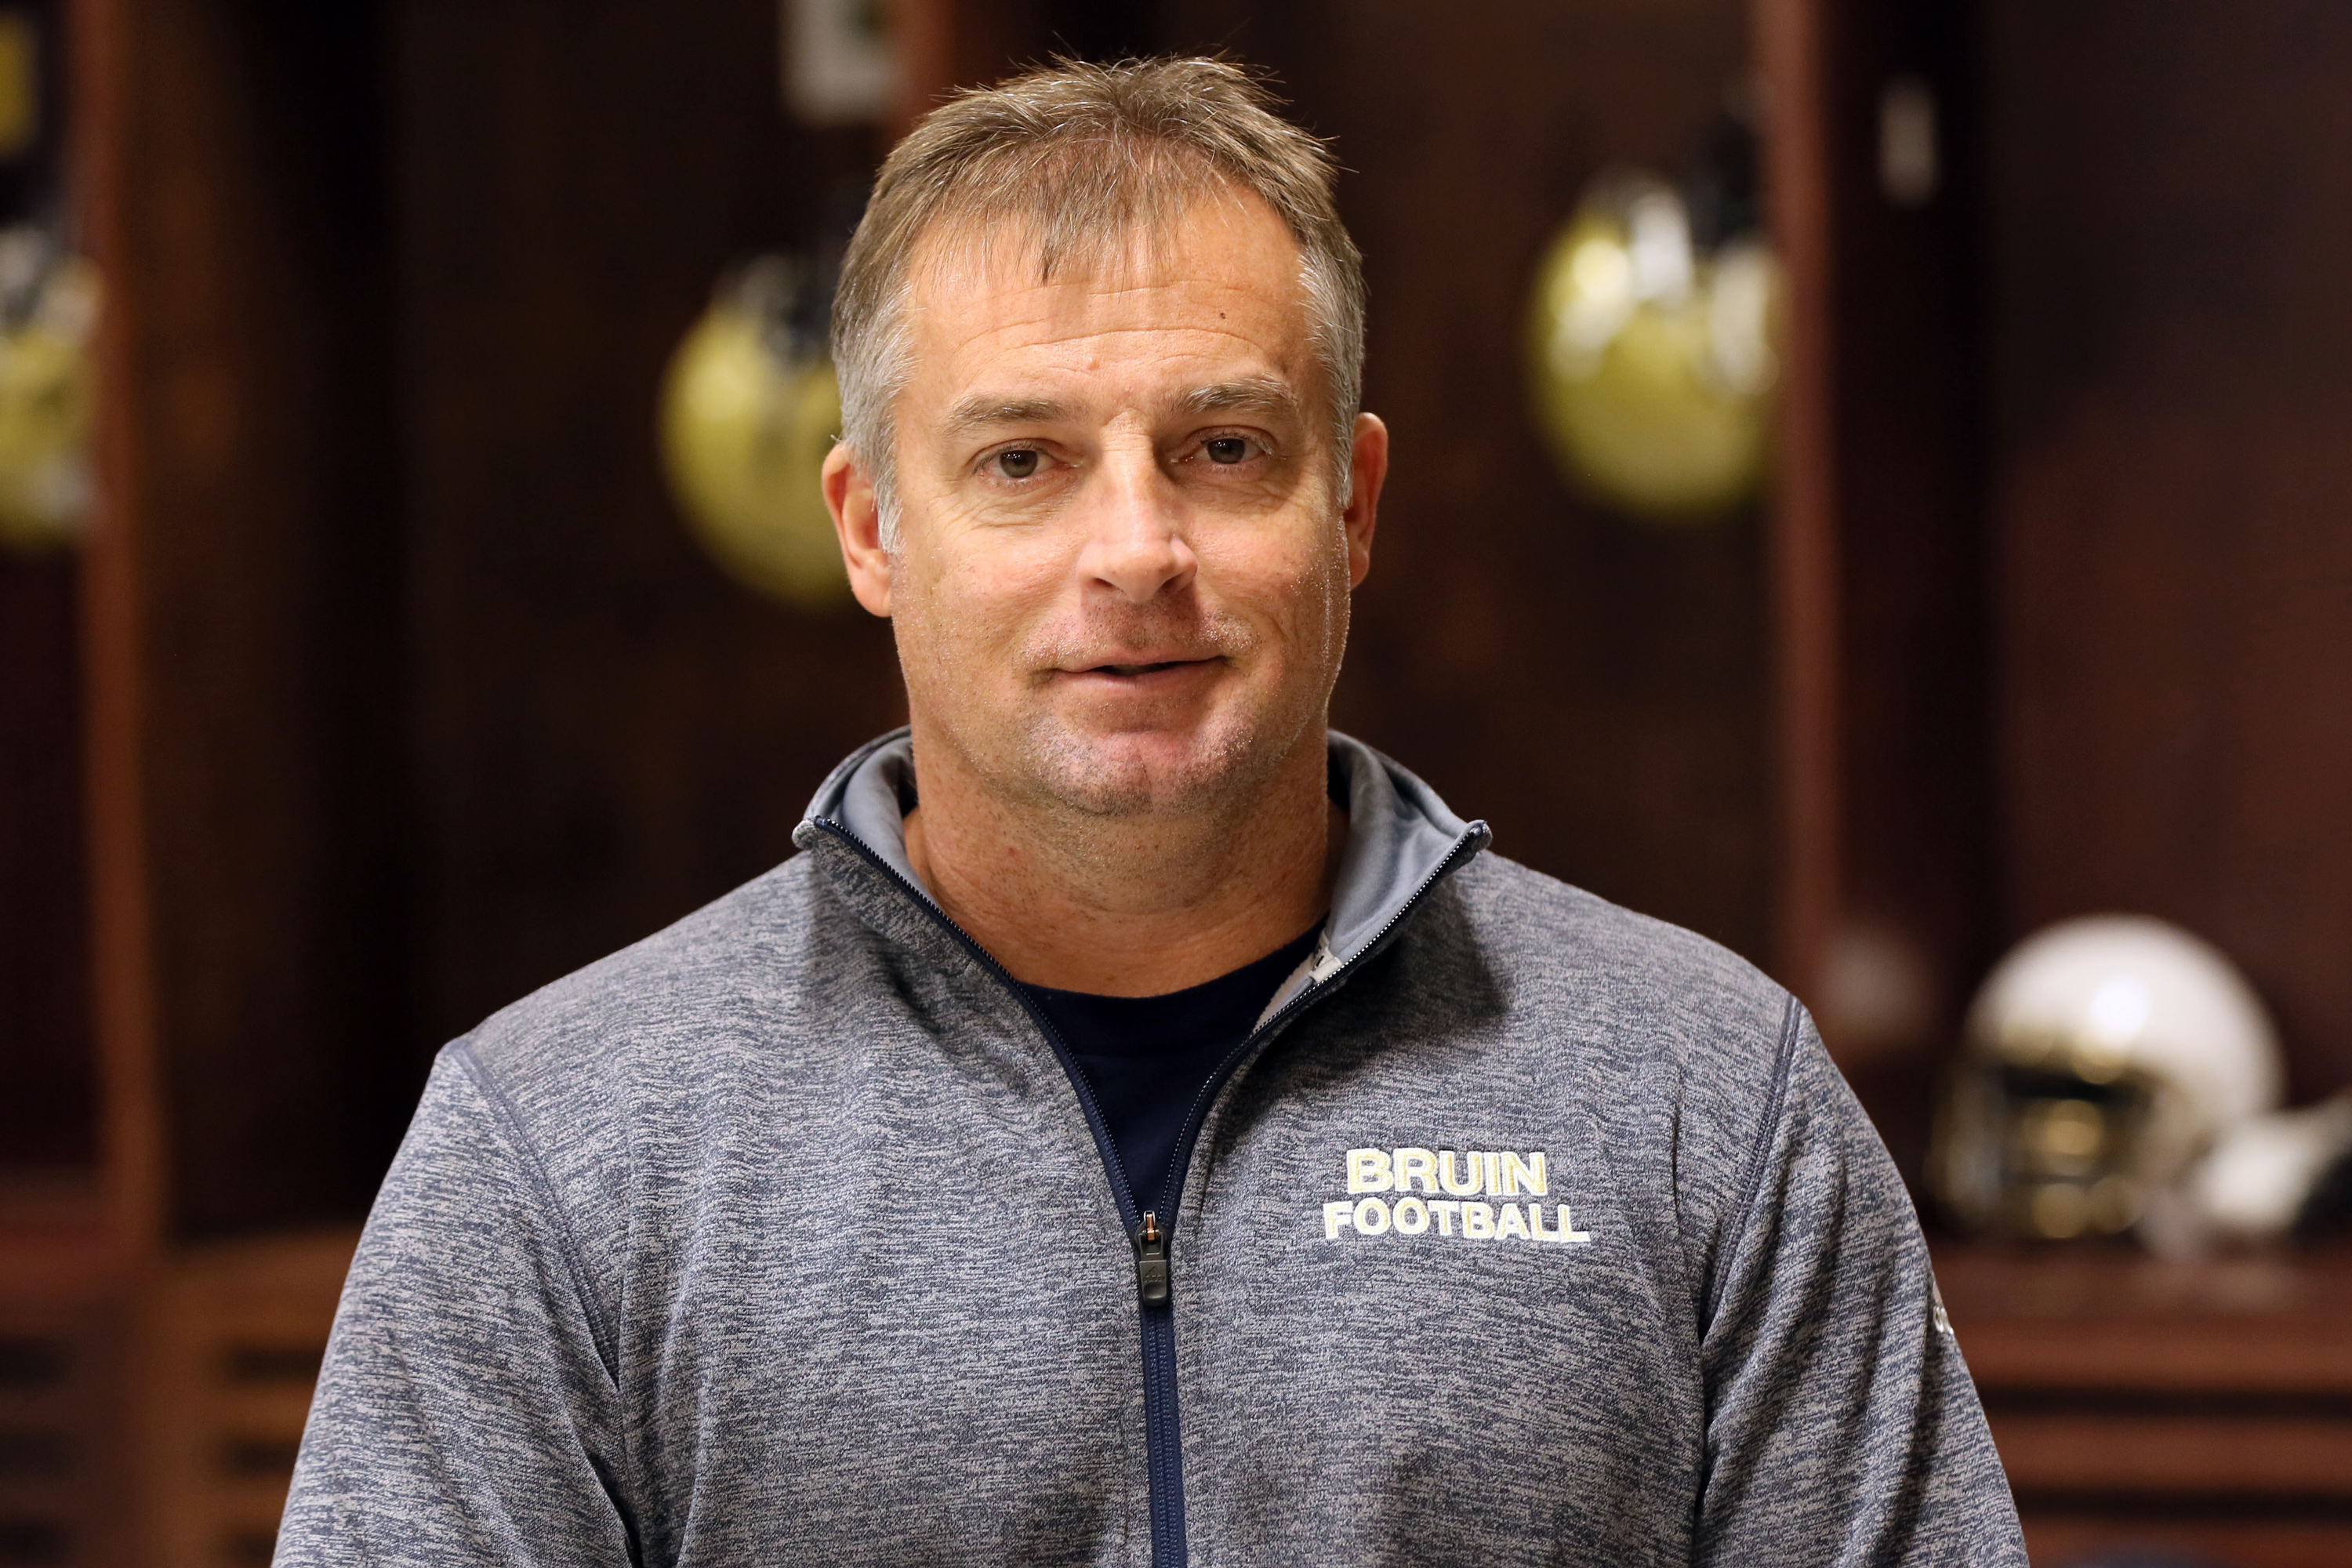 12/16/16 1:28:07 PM -- -- Coach of the Year candidate, Kevin Kelley, Pulaski Academy -- Photo by USA TODAY Sports Images, Gannett ORG XMIT: US 135855 ALL USA PLAYER O 12/12/2016 [Via MerlinFTP Drop]